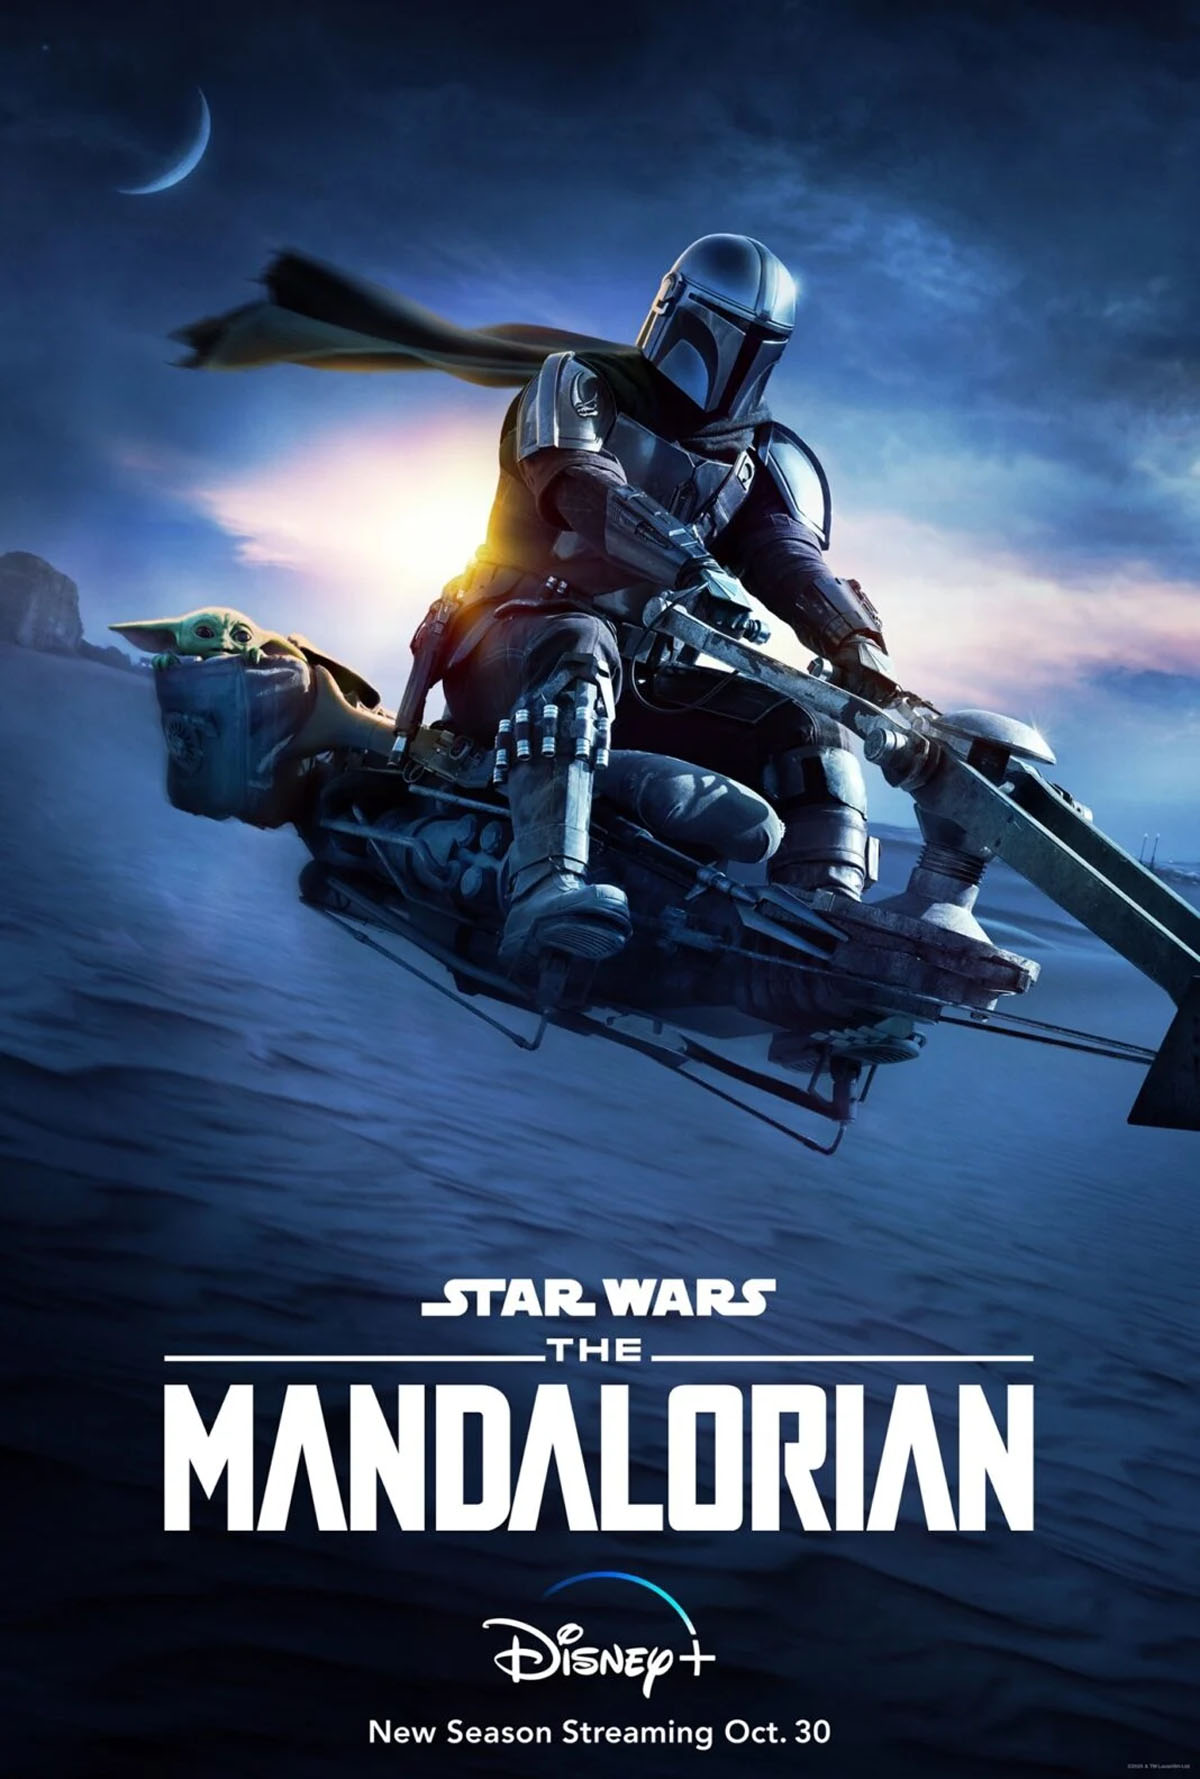 Disney Drops A New Poster For The Mandalorian Season 2